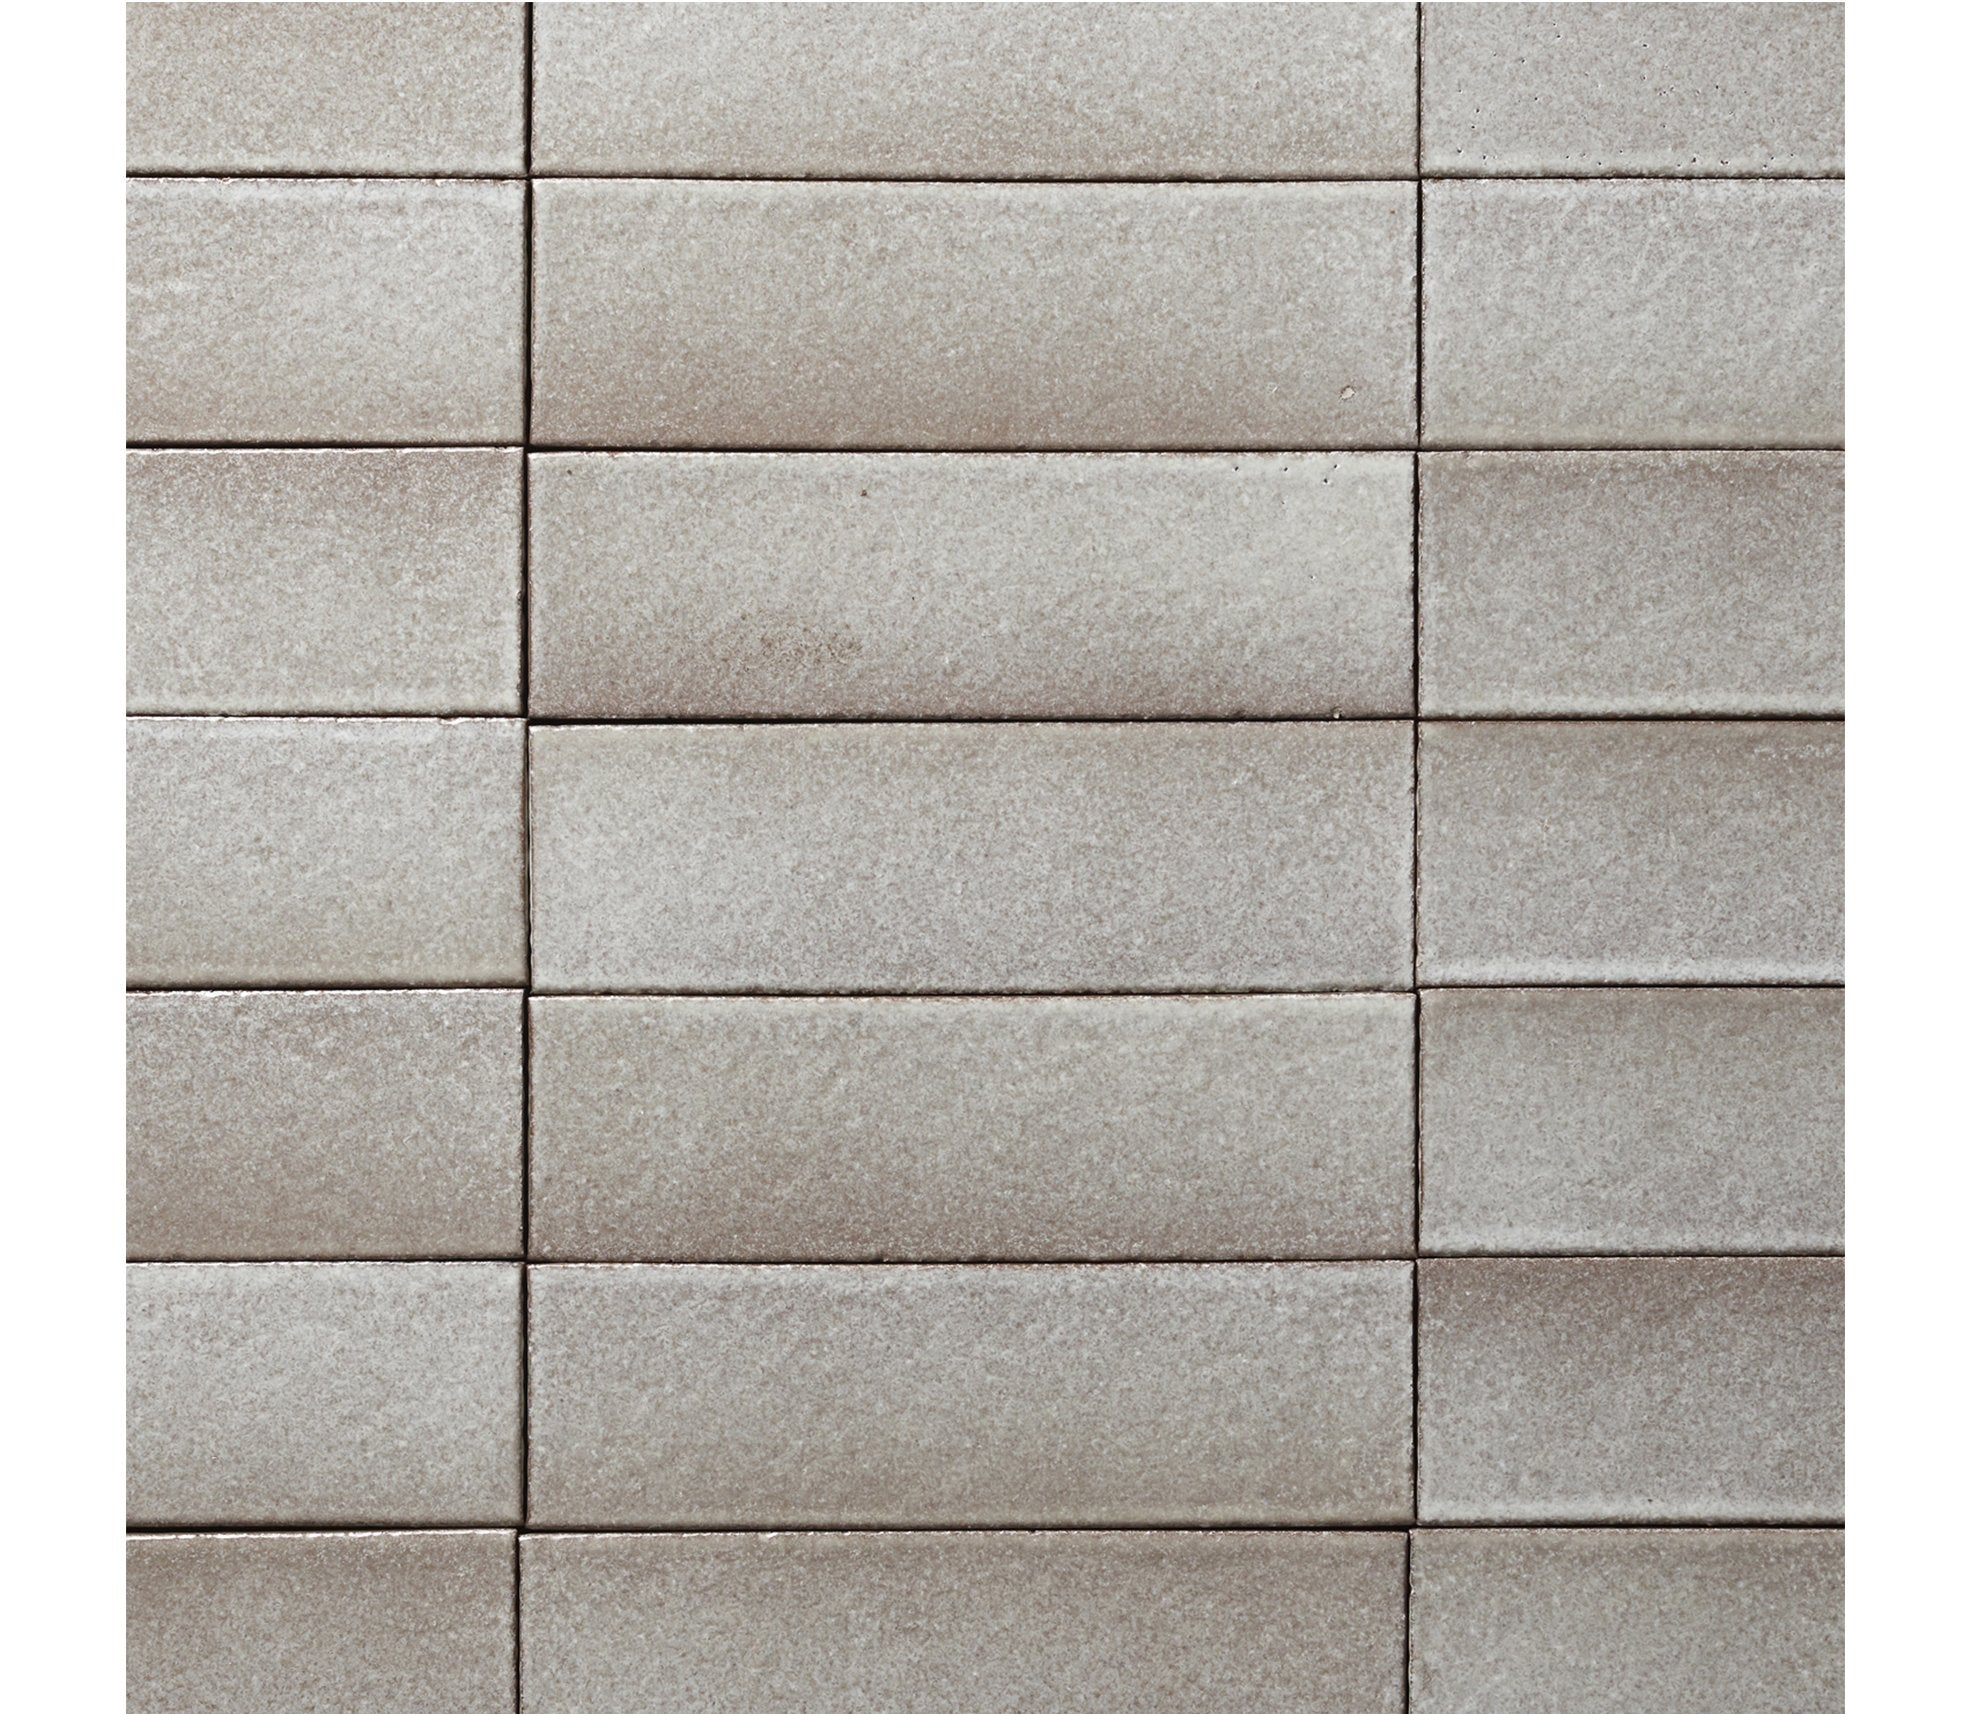 Terra Firma Glazed Bricks Product Image 39